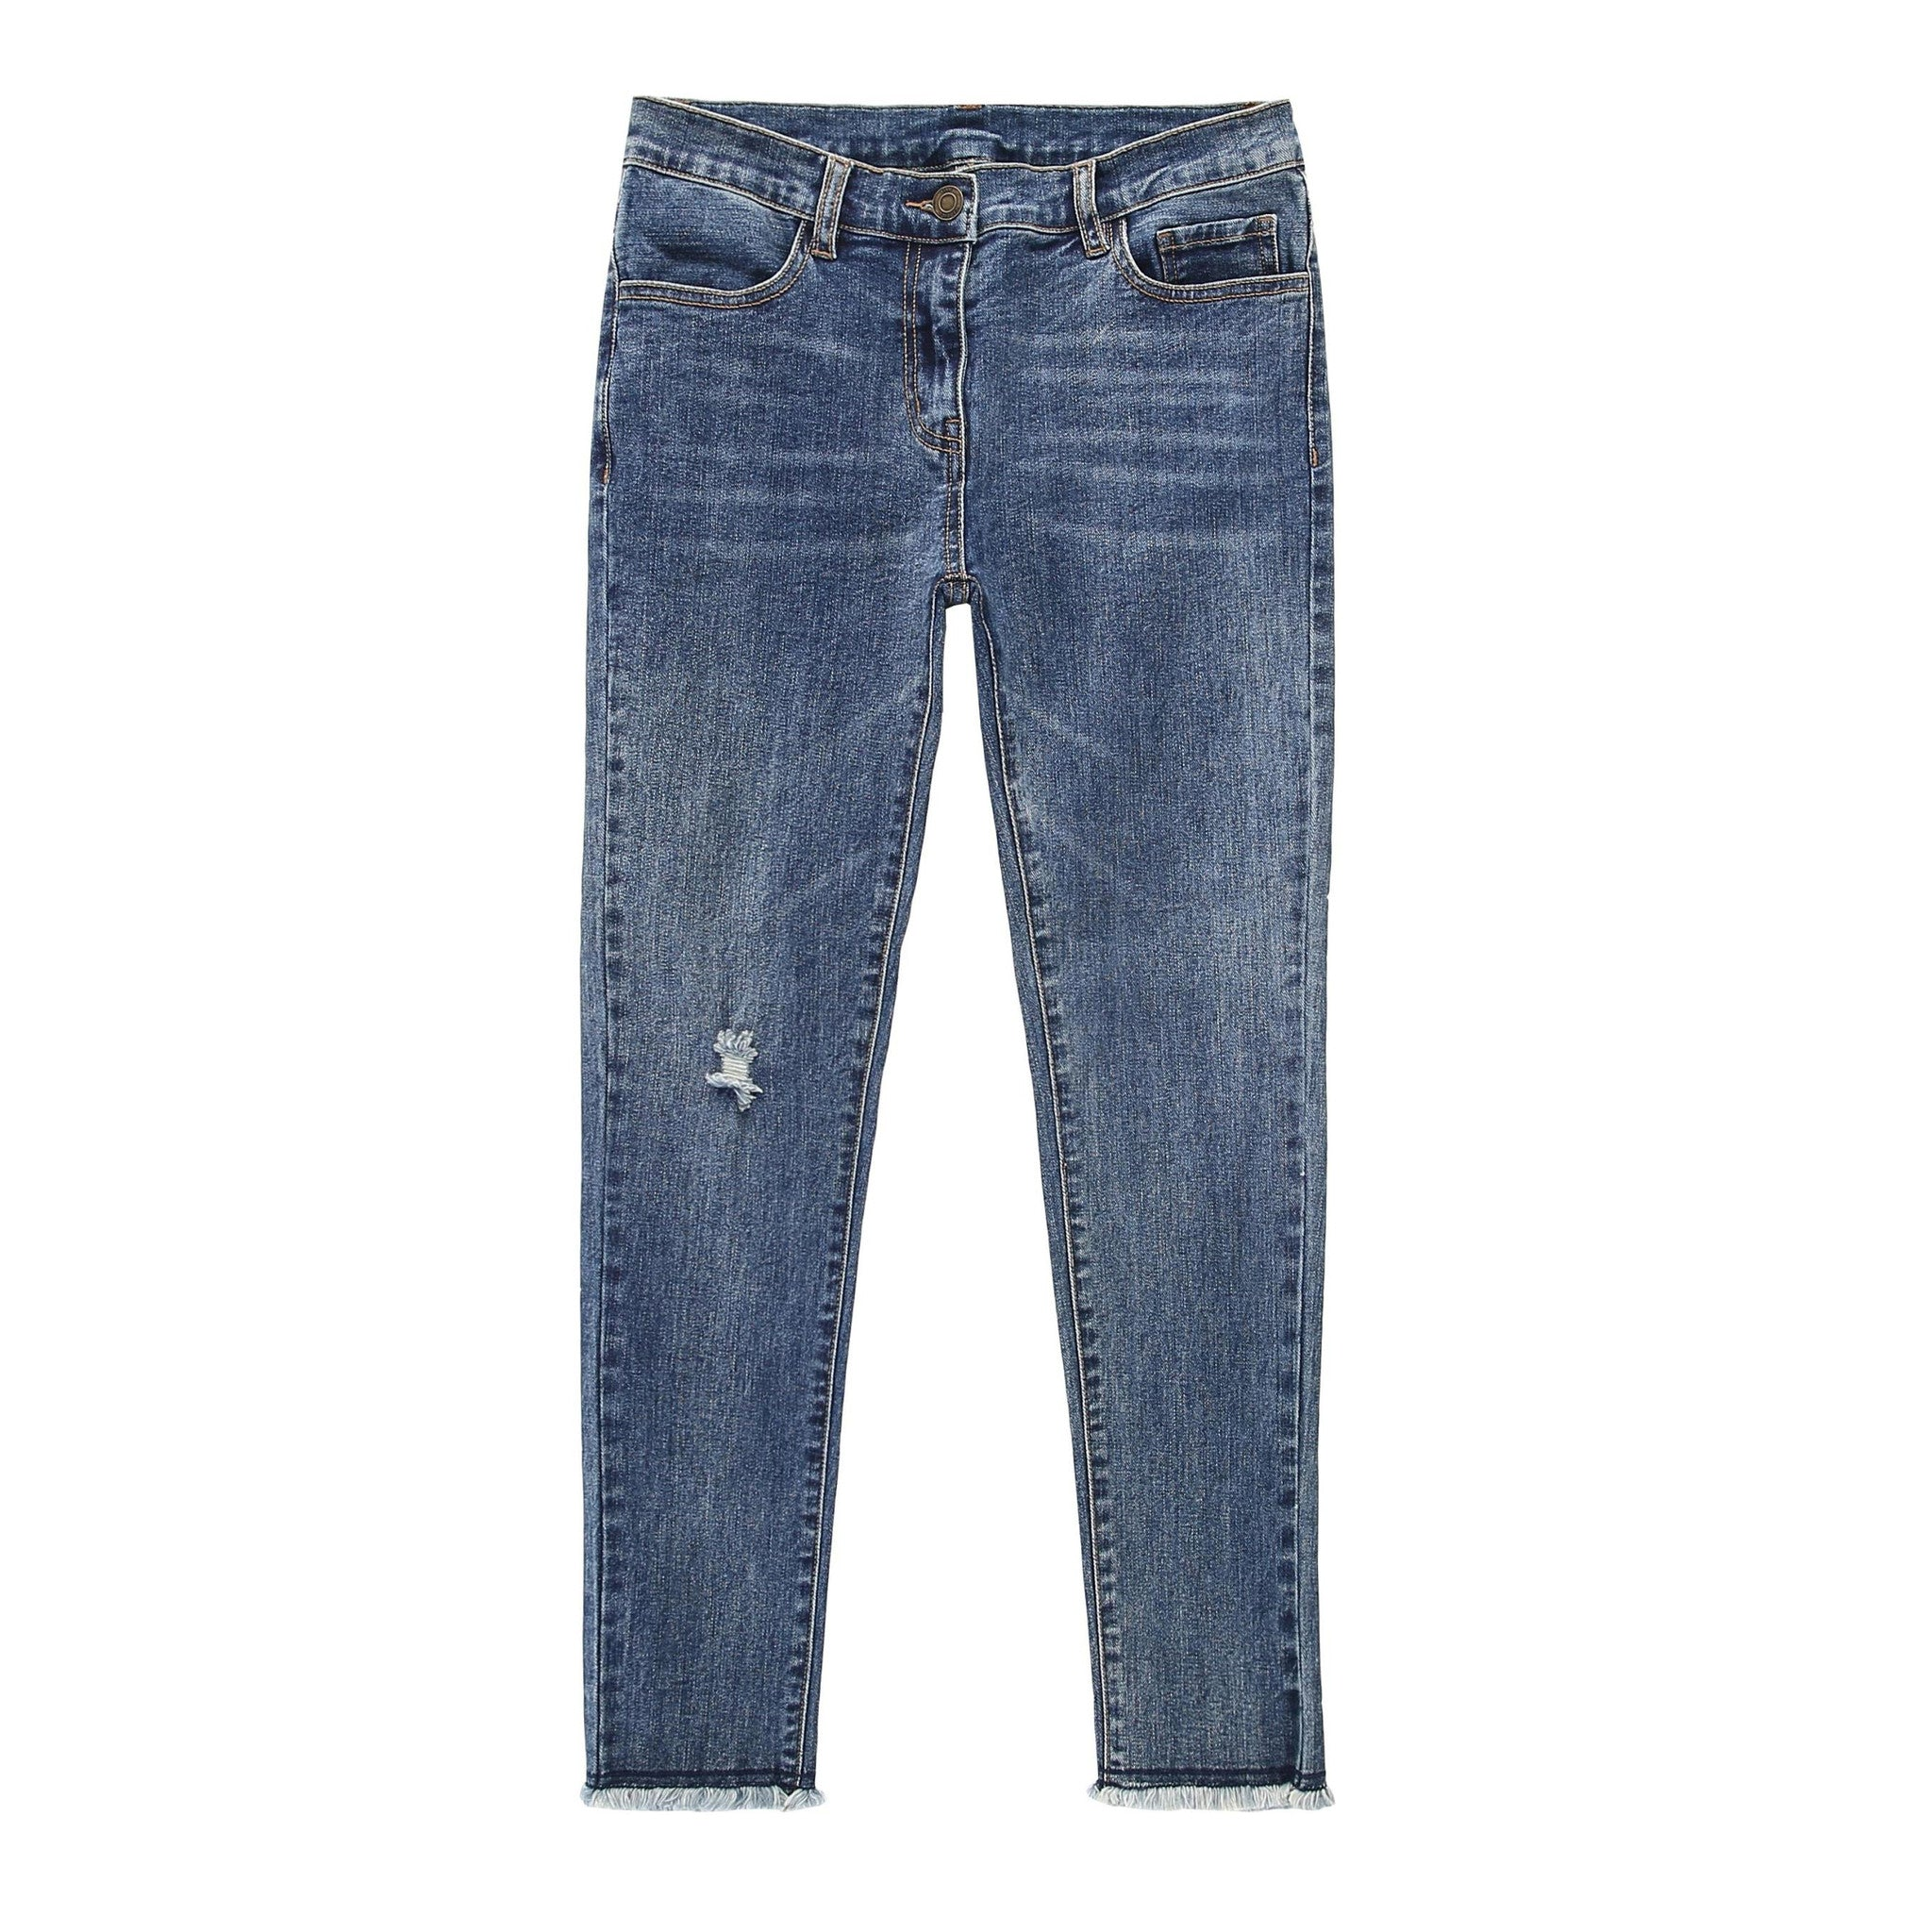 Distressed High-waist Jeans - Indigo